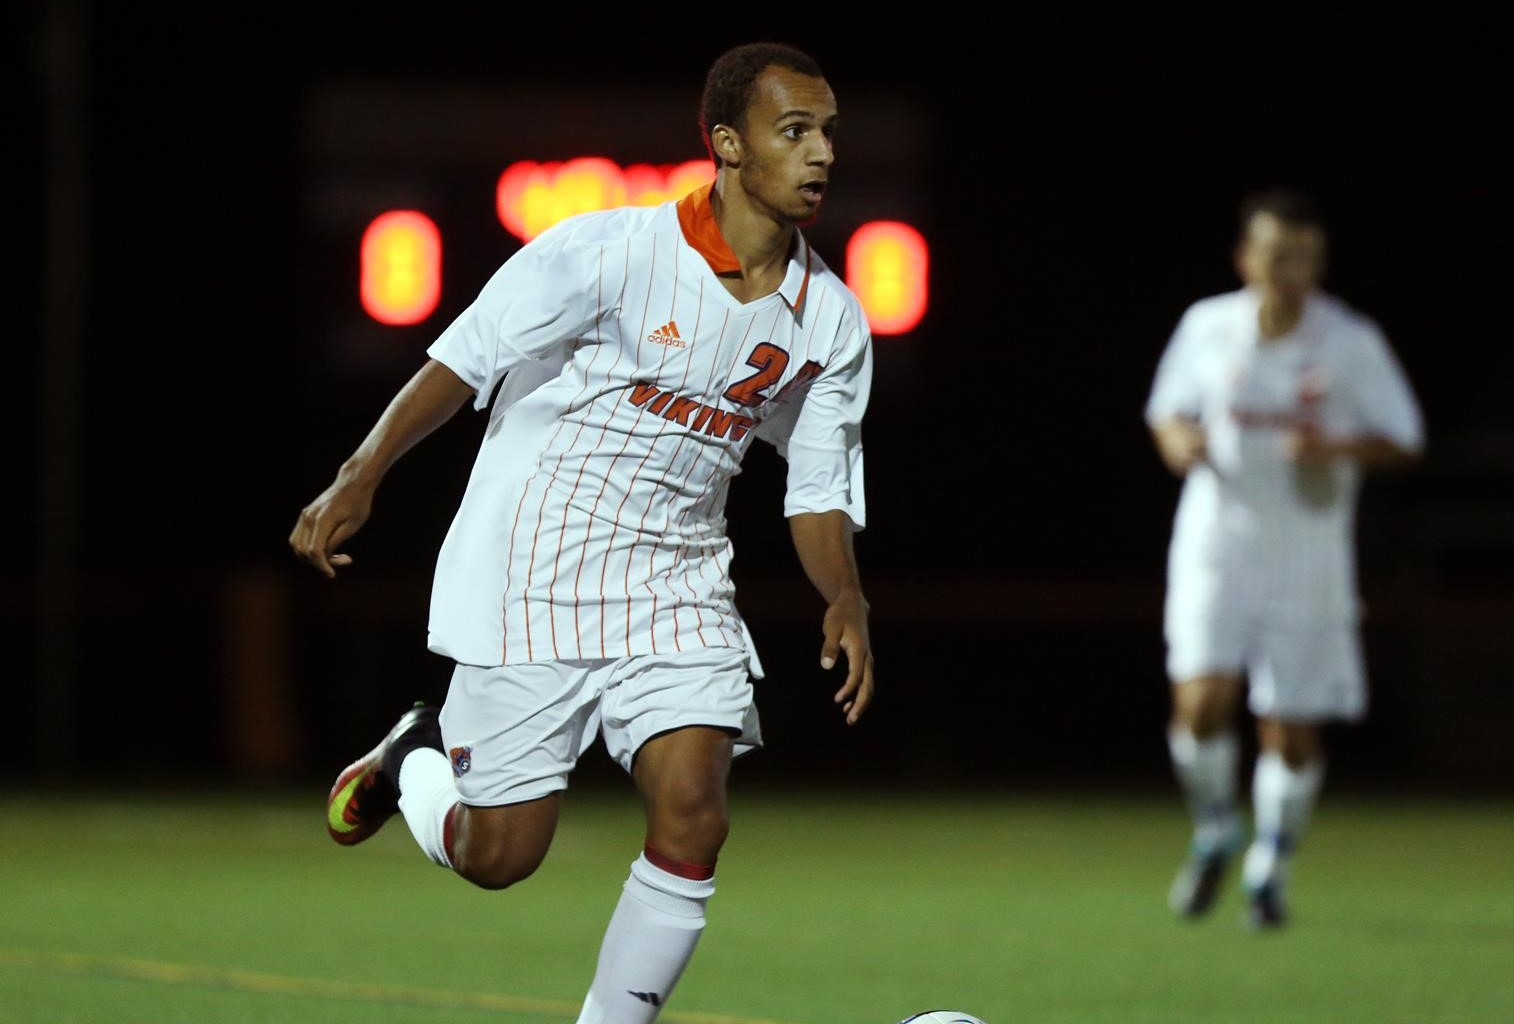 Wentworth Ends Salem State's Winning Streak